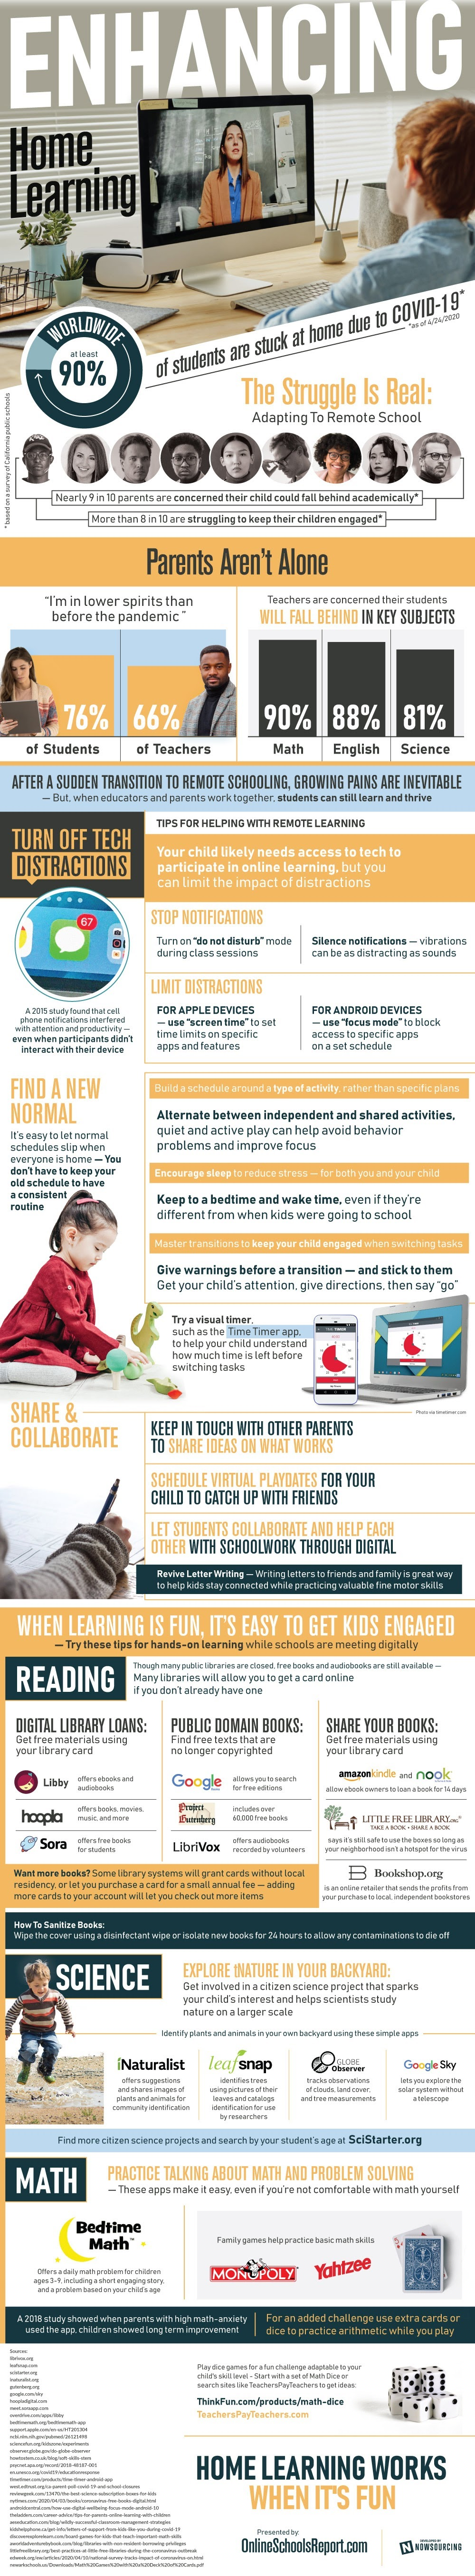 Enhancing Home Learning #infographic